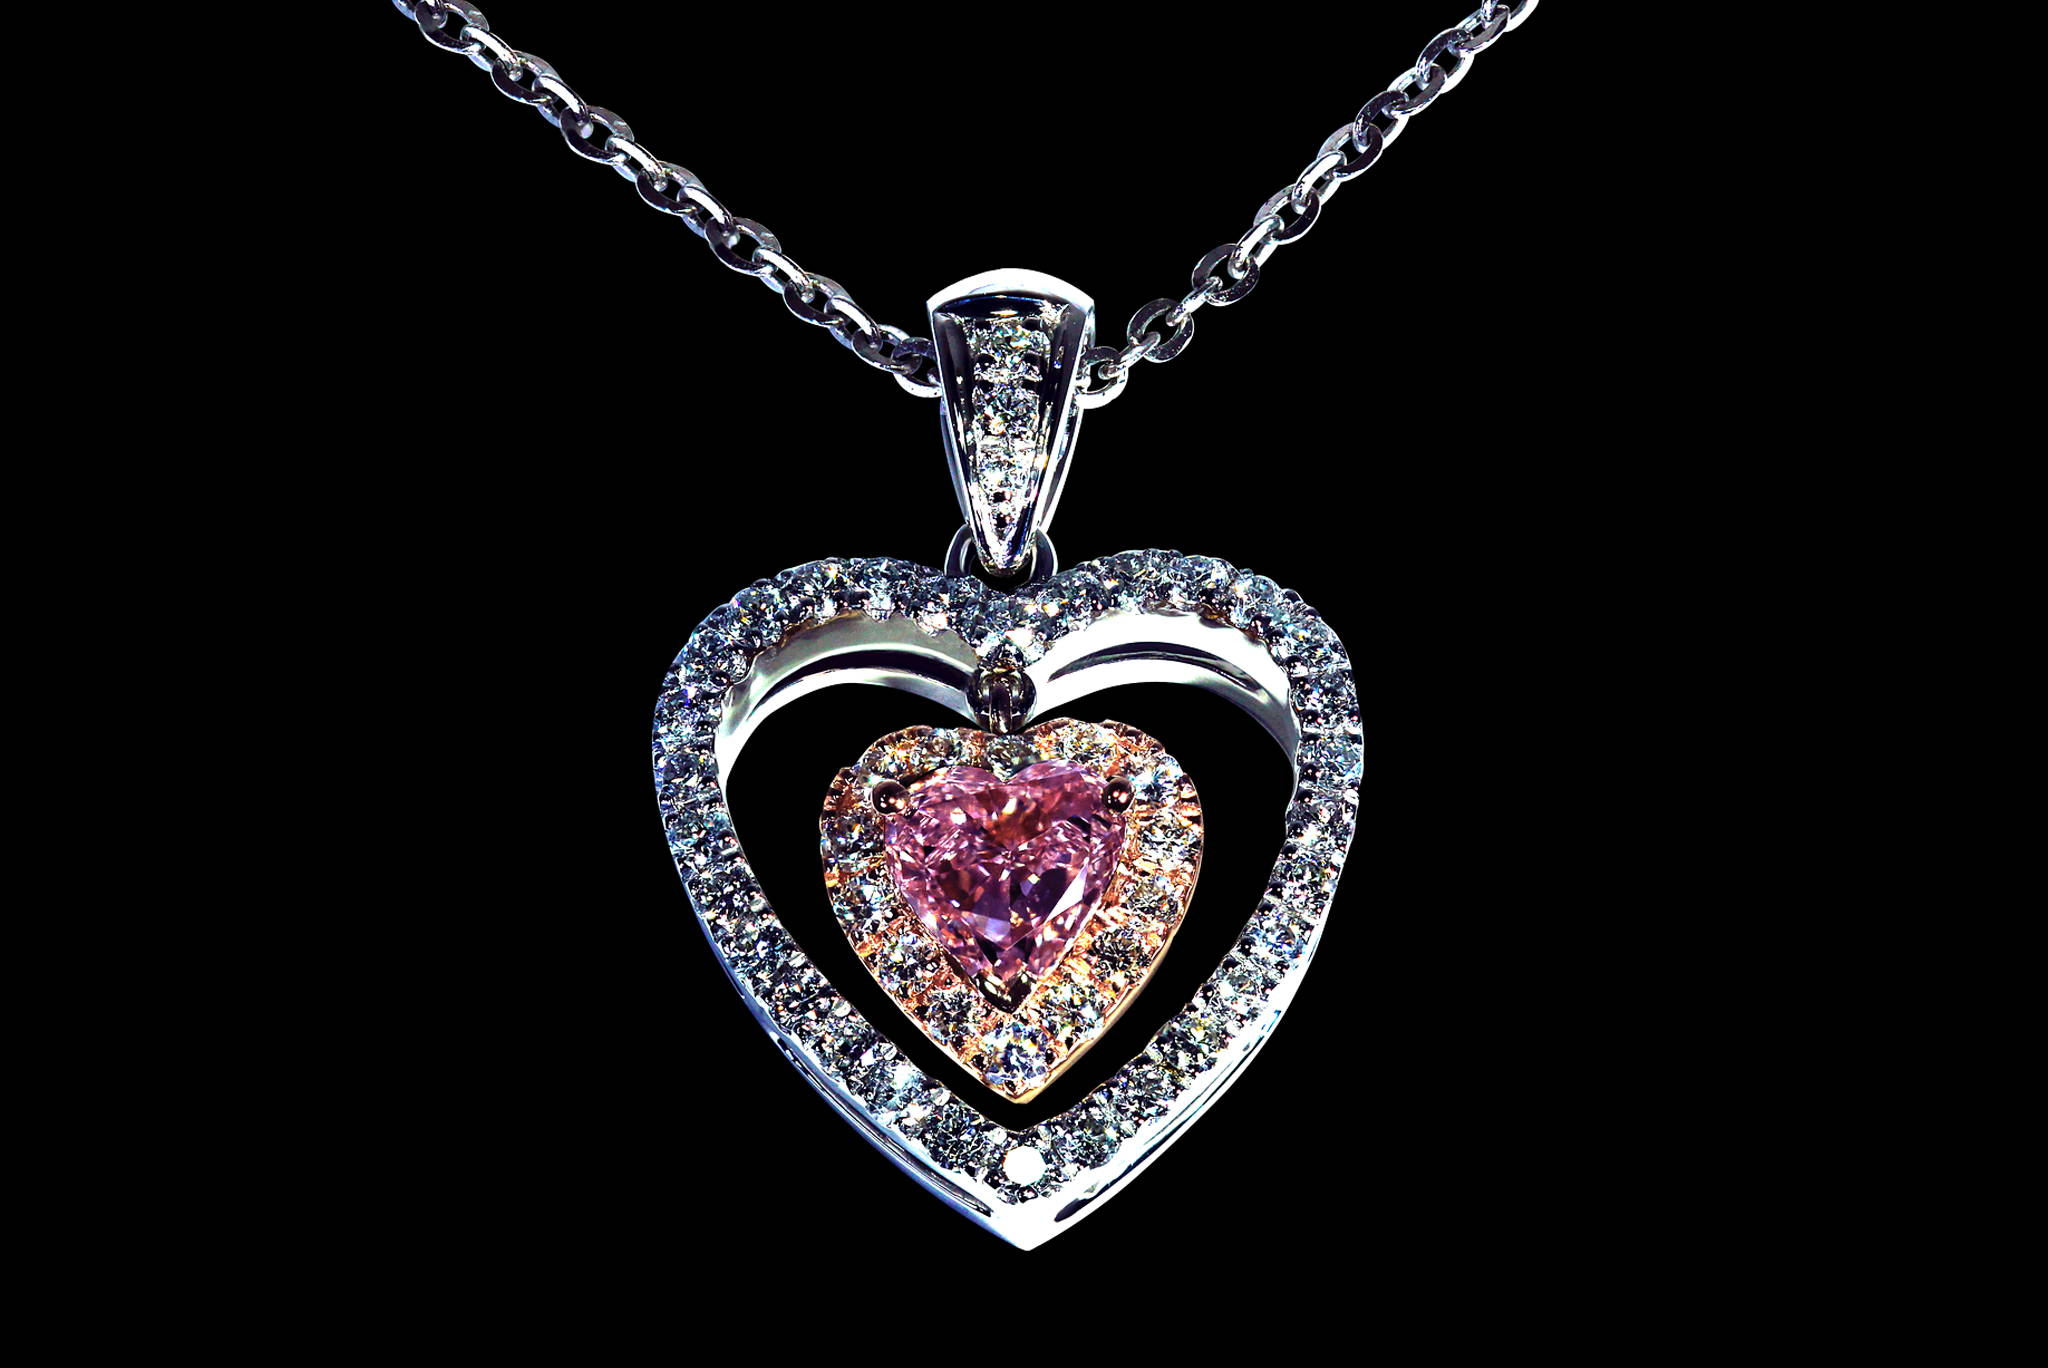 Fancy Vivid Purplish Pink Dangling Heart Pendant front view